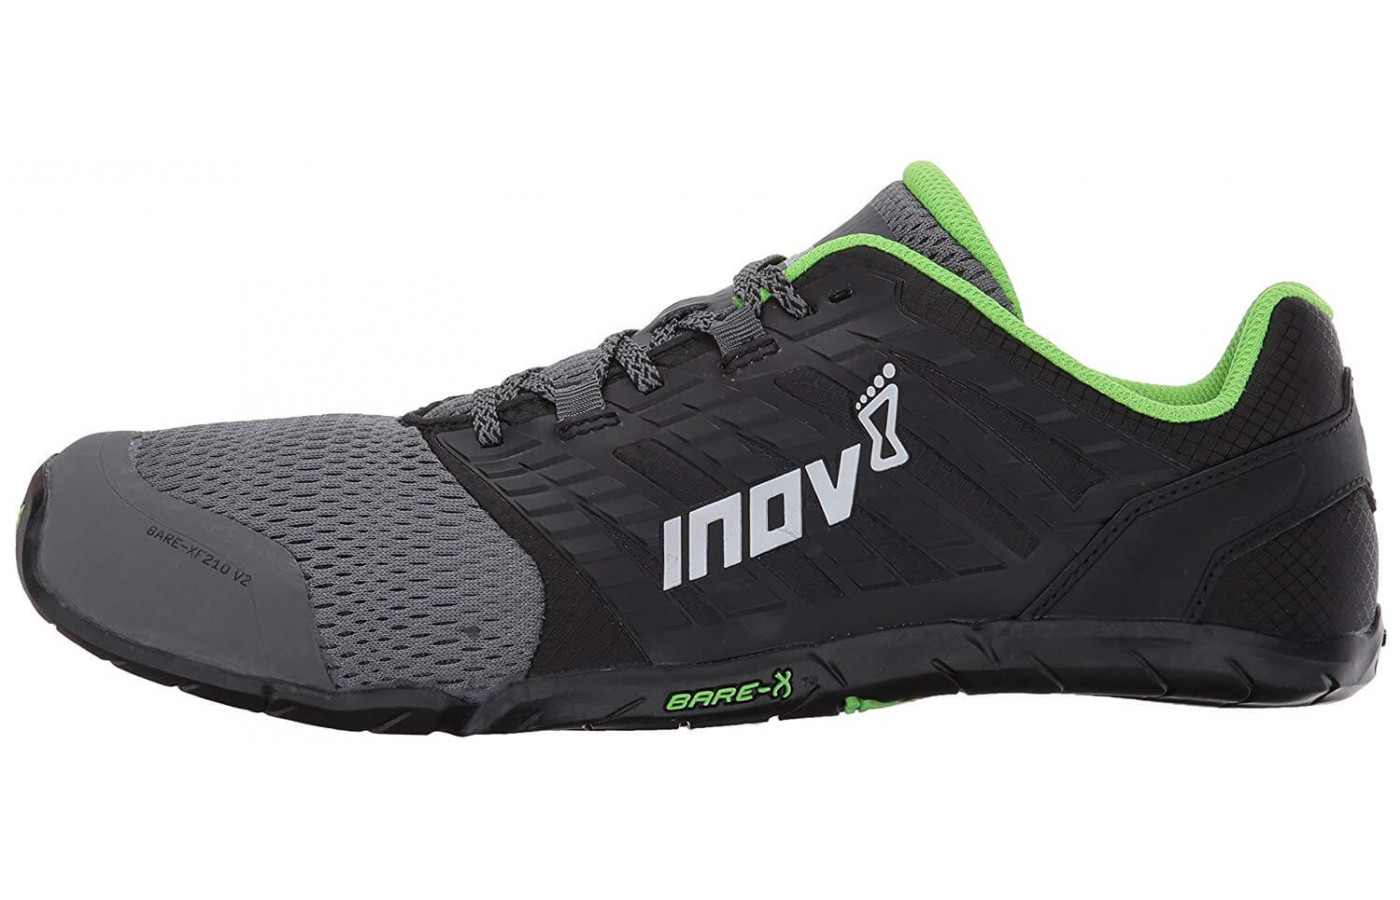 Instead of a midsole, the Bare-XF 210 v2 has a 3mm Power Footbed insole